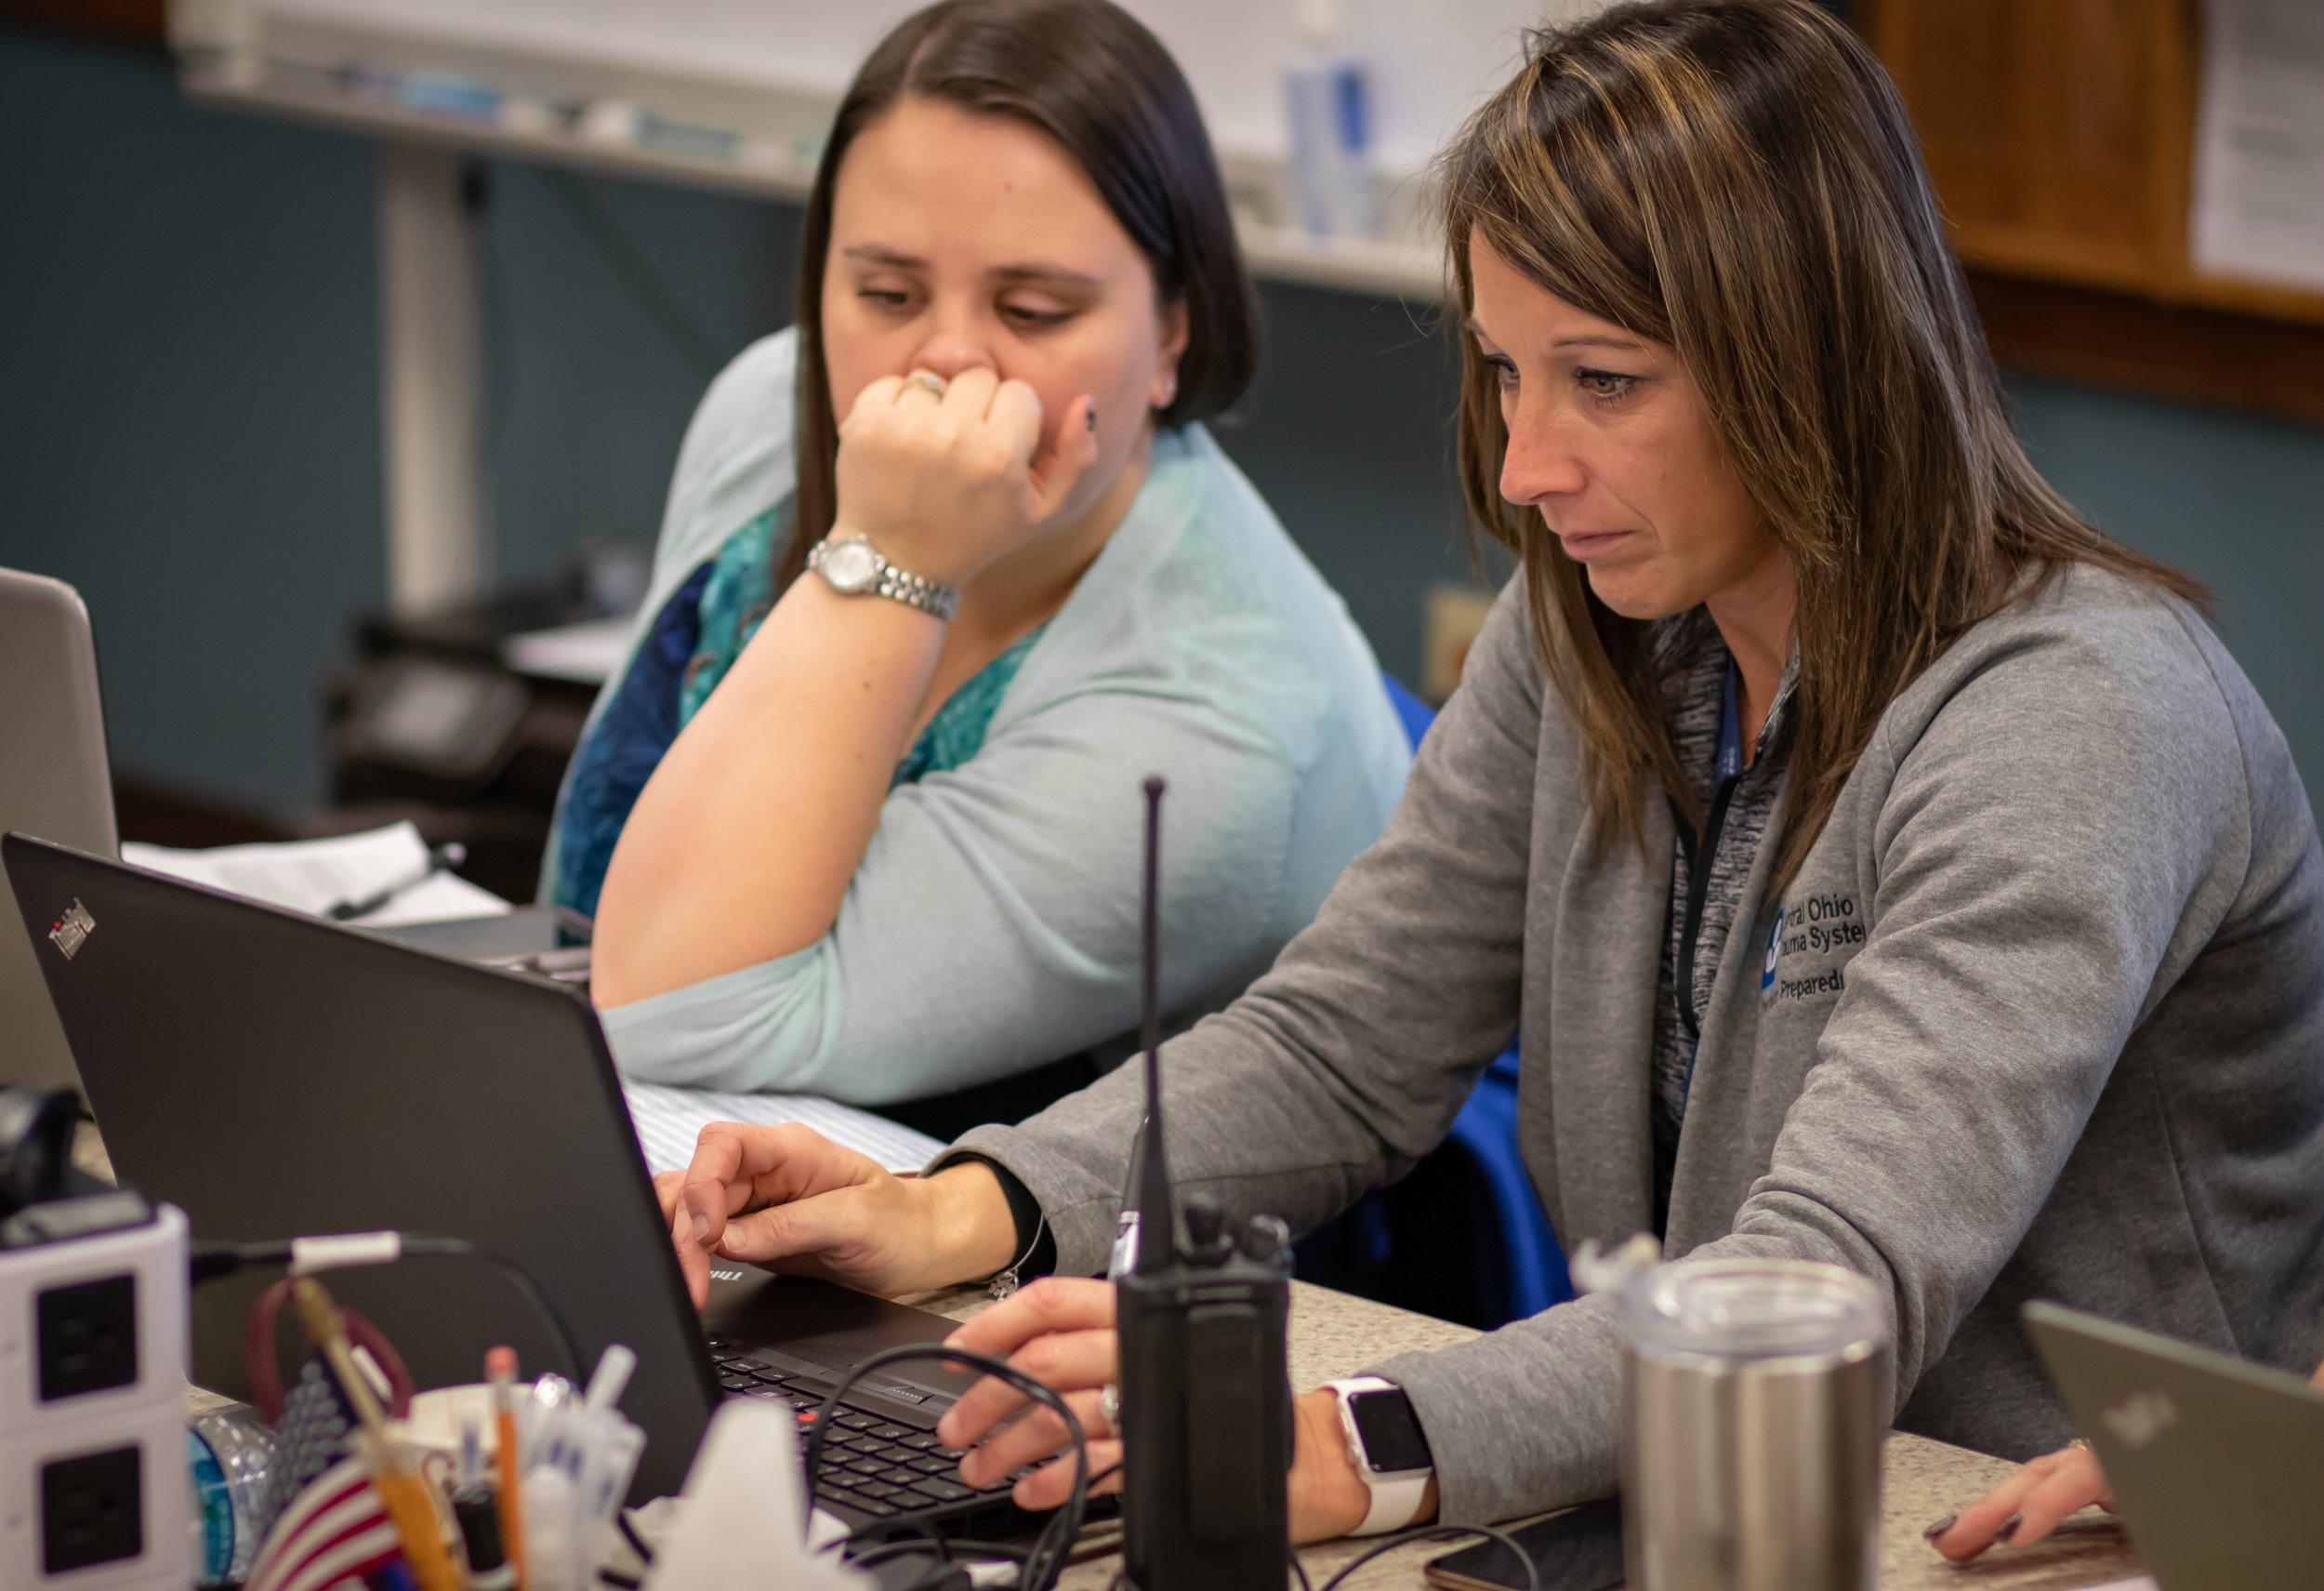 COTS staff members monitor the progress of Central Ohio hospitals during the RHEP Coalition Surge exercise